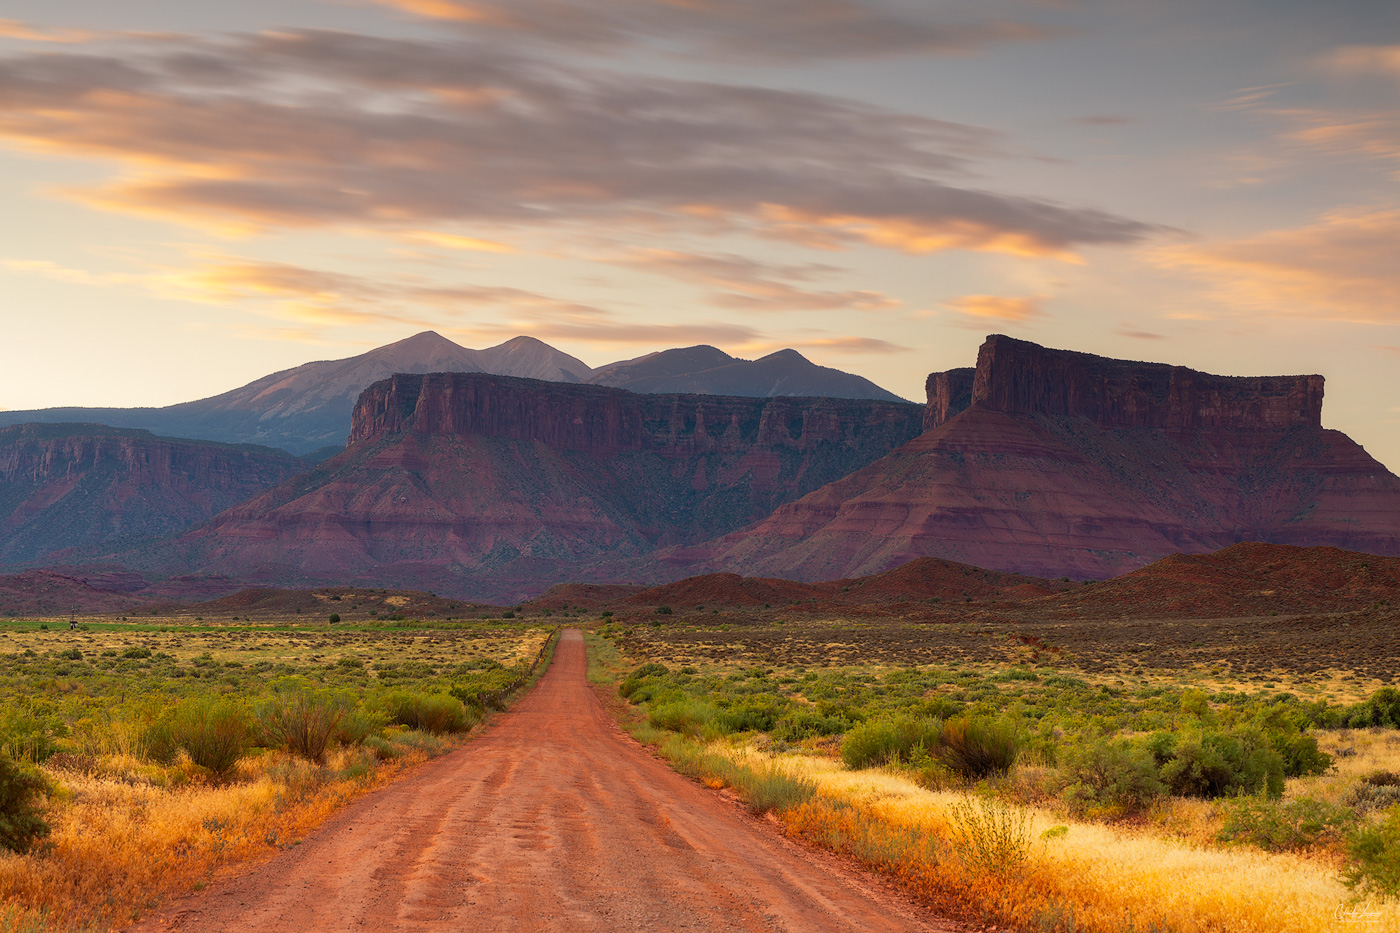 View of Red Rock Formations near Moab in Utah at sunrise.